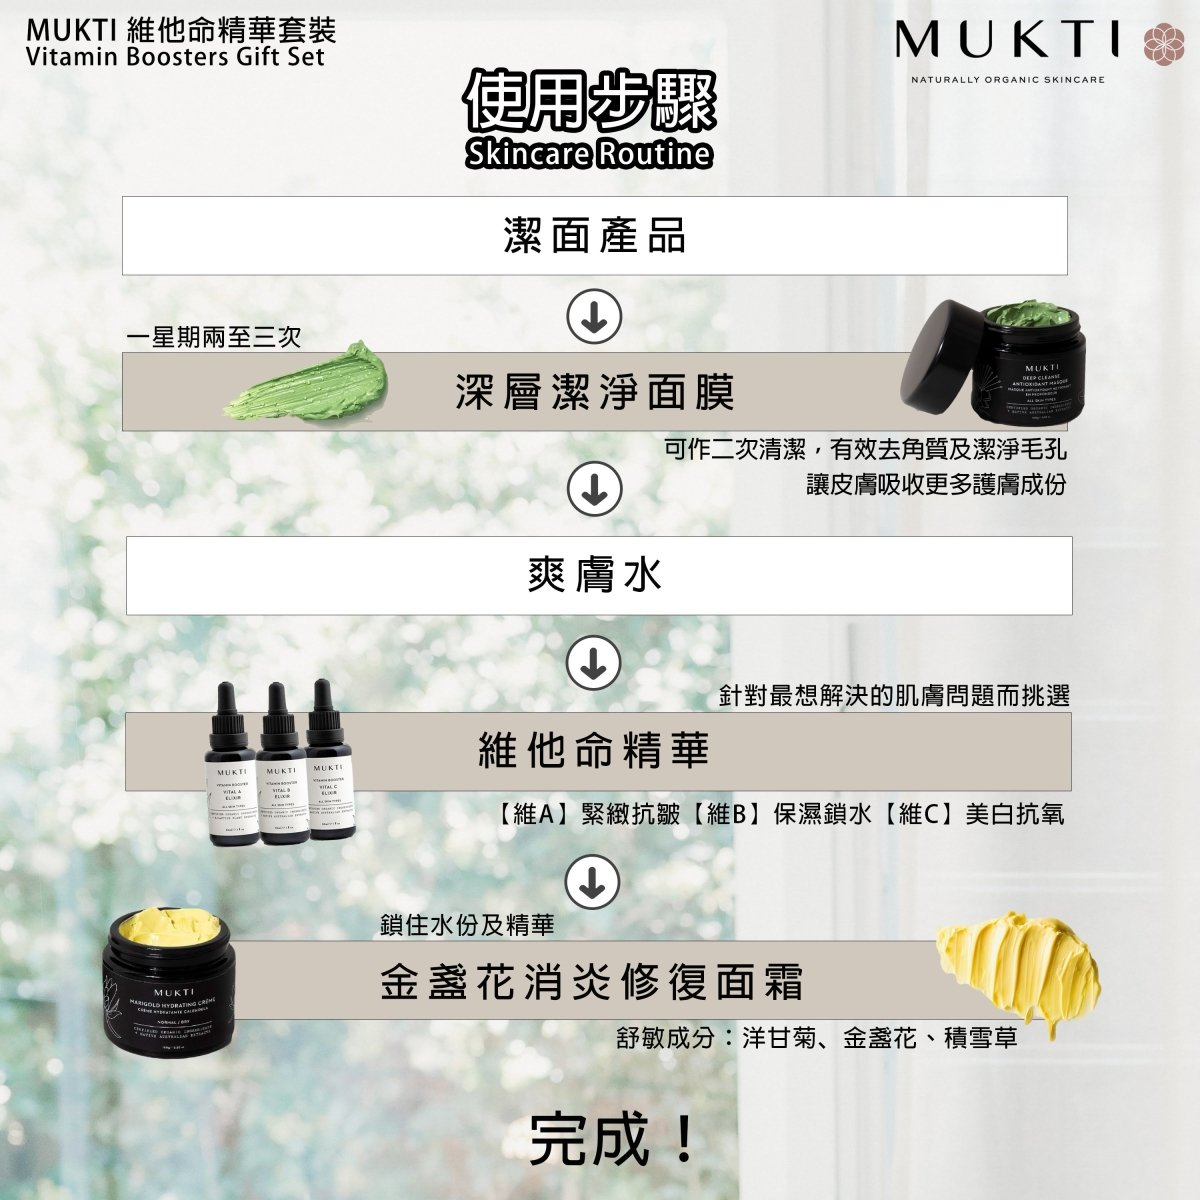 MUKTI Hydrating Vitamin Boosters Collection 維他命精華套裝 - MINT Organics